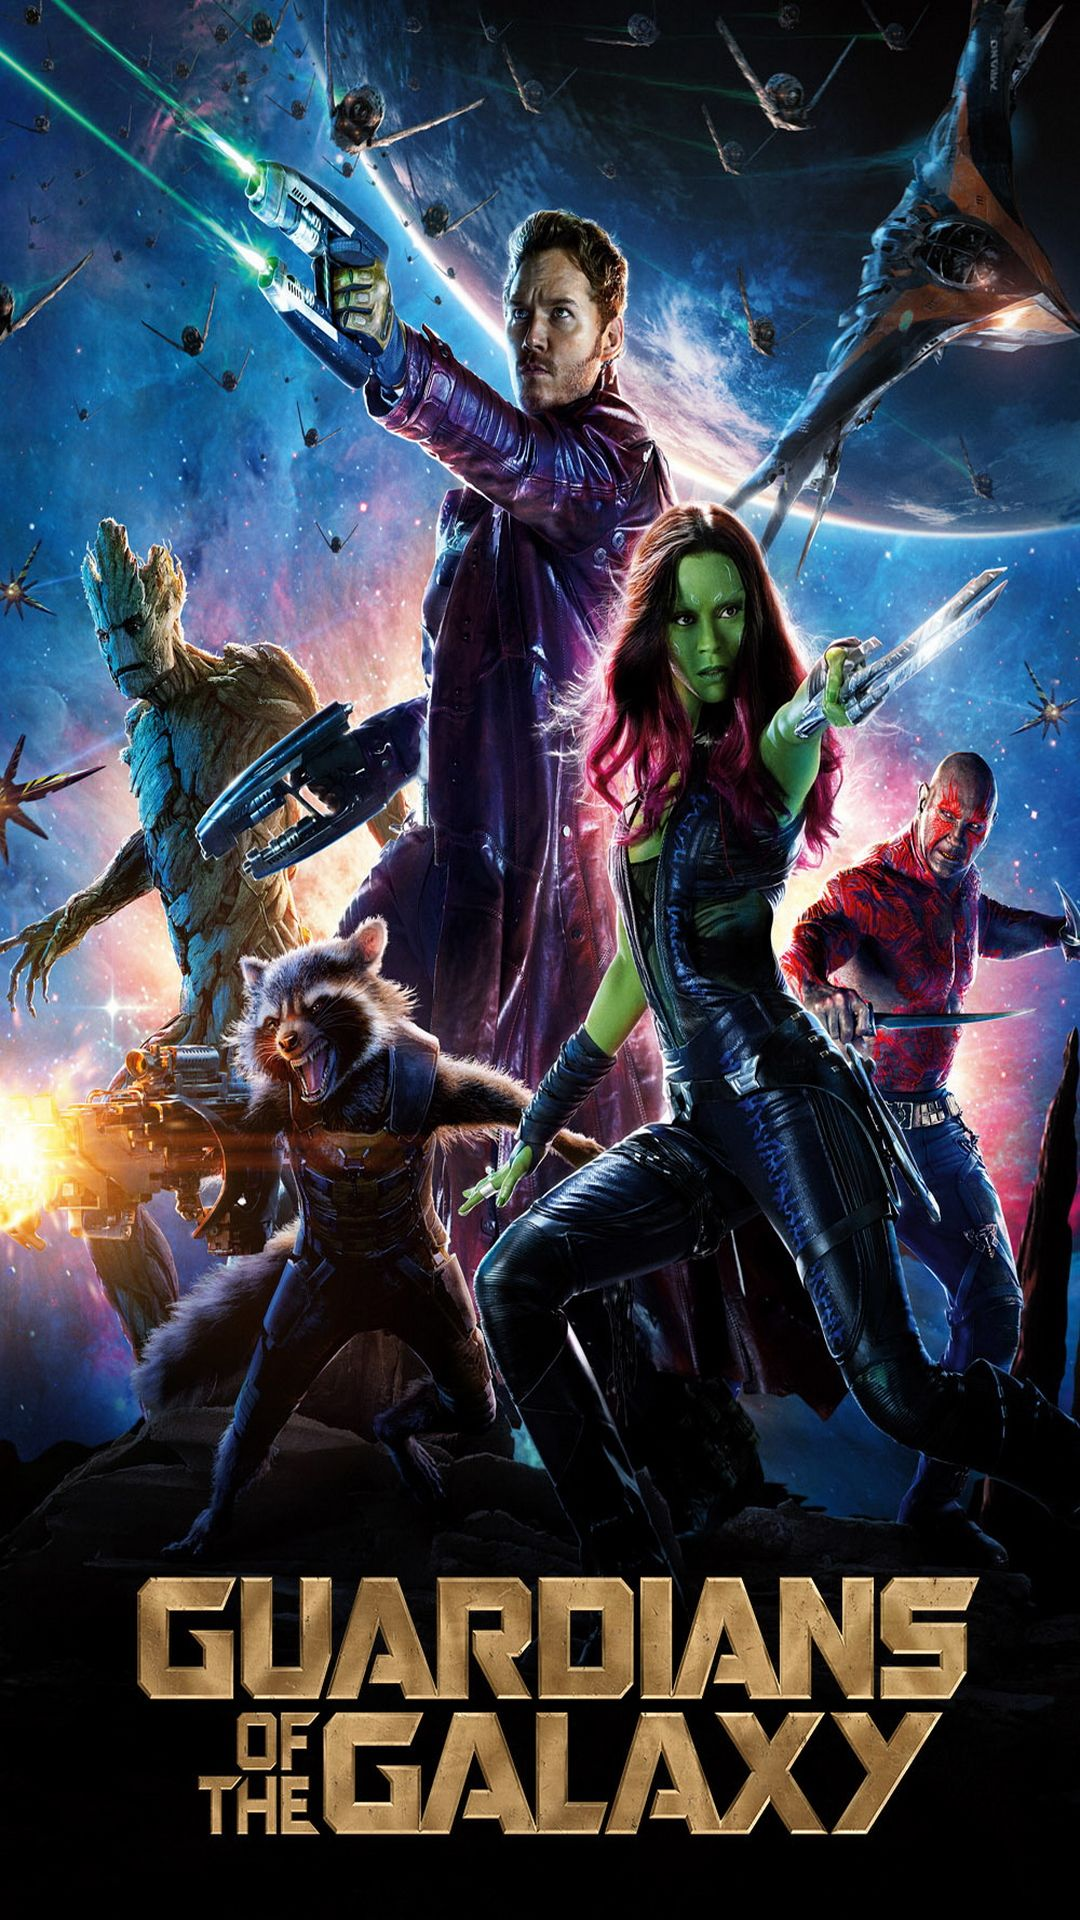 Tap And Get The Free App Movies Guardians Of The Galaxy Groot Rocket Star Lord Gamora Colorful Comics Act Galaxy Movie Guardians Of The Galaxy Galaxy Poster